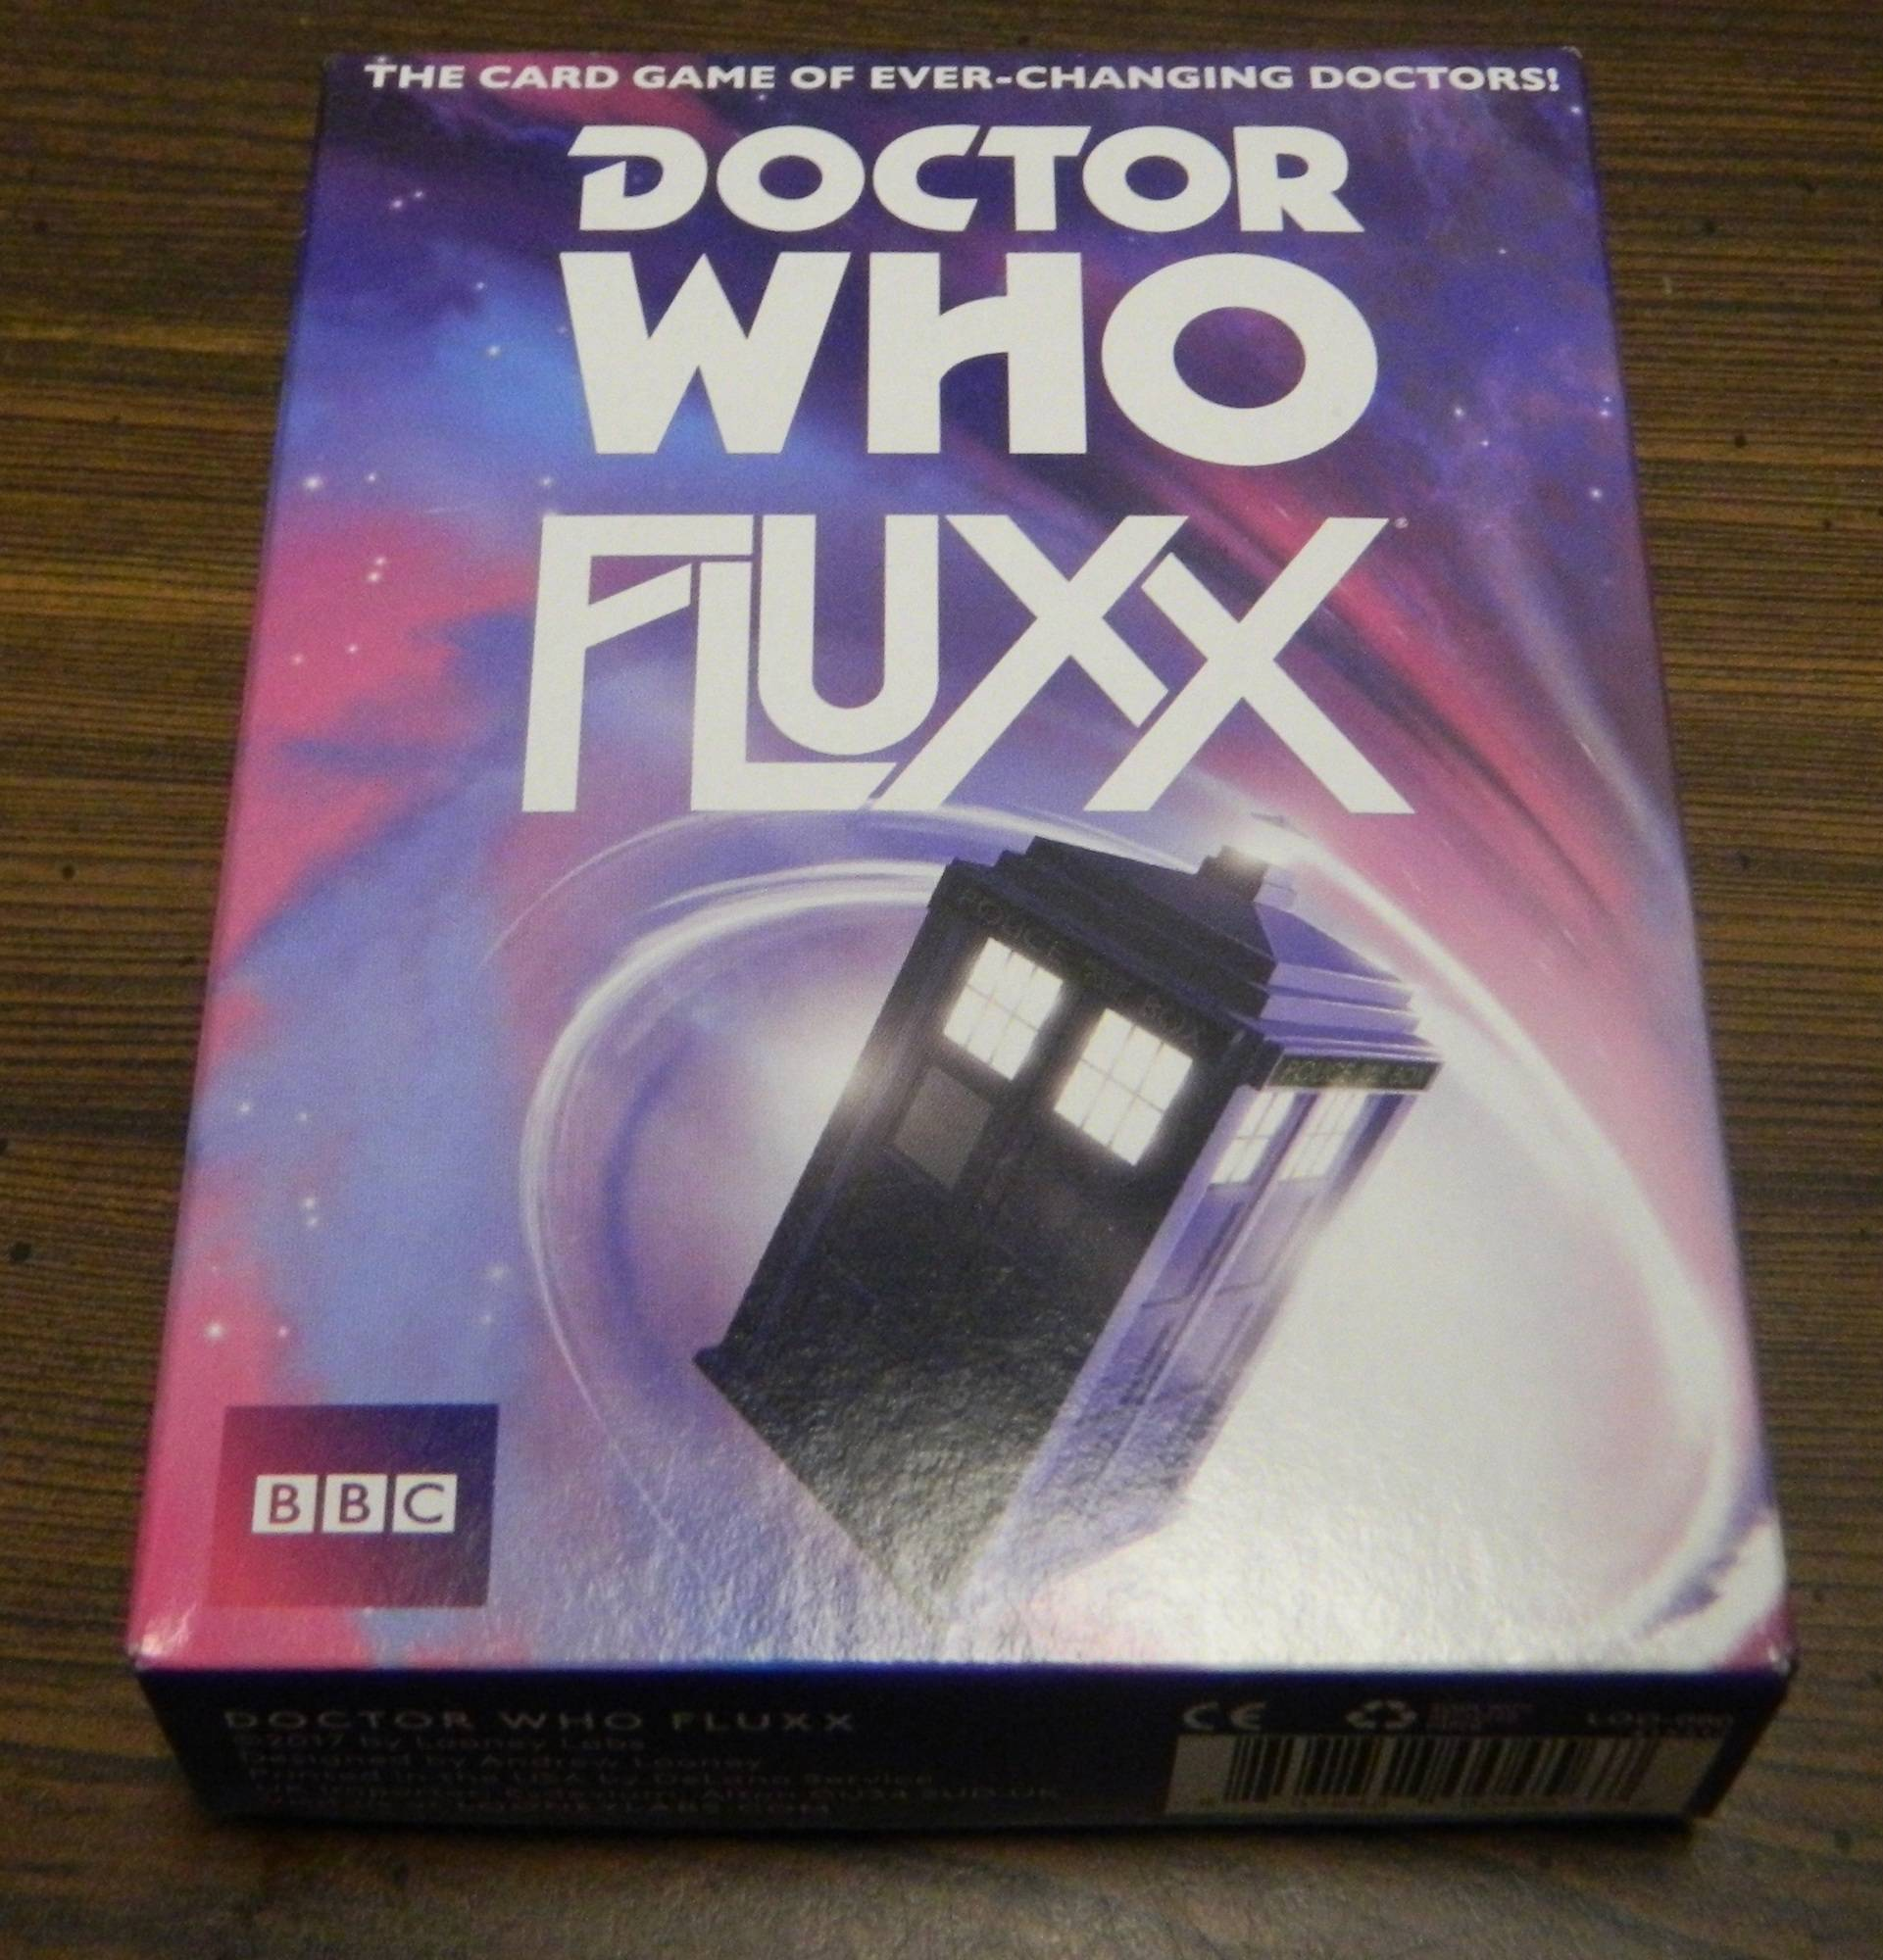 Box for Doctor Who Fluxx